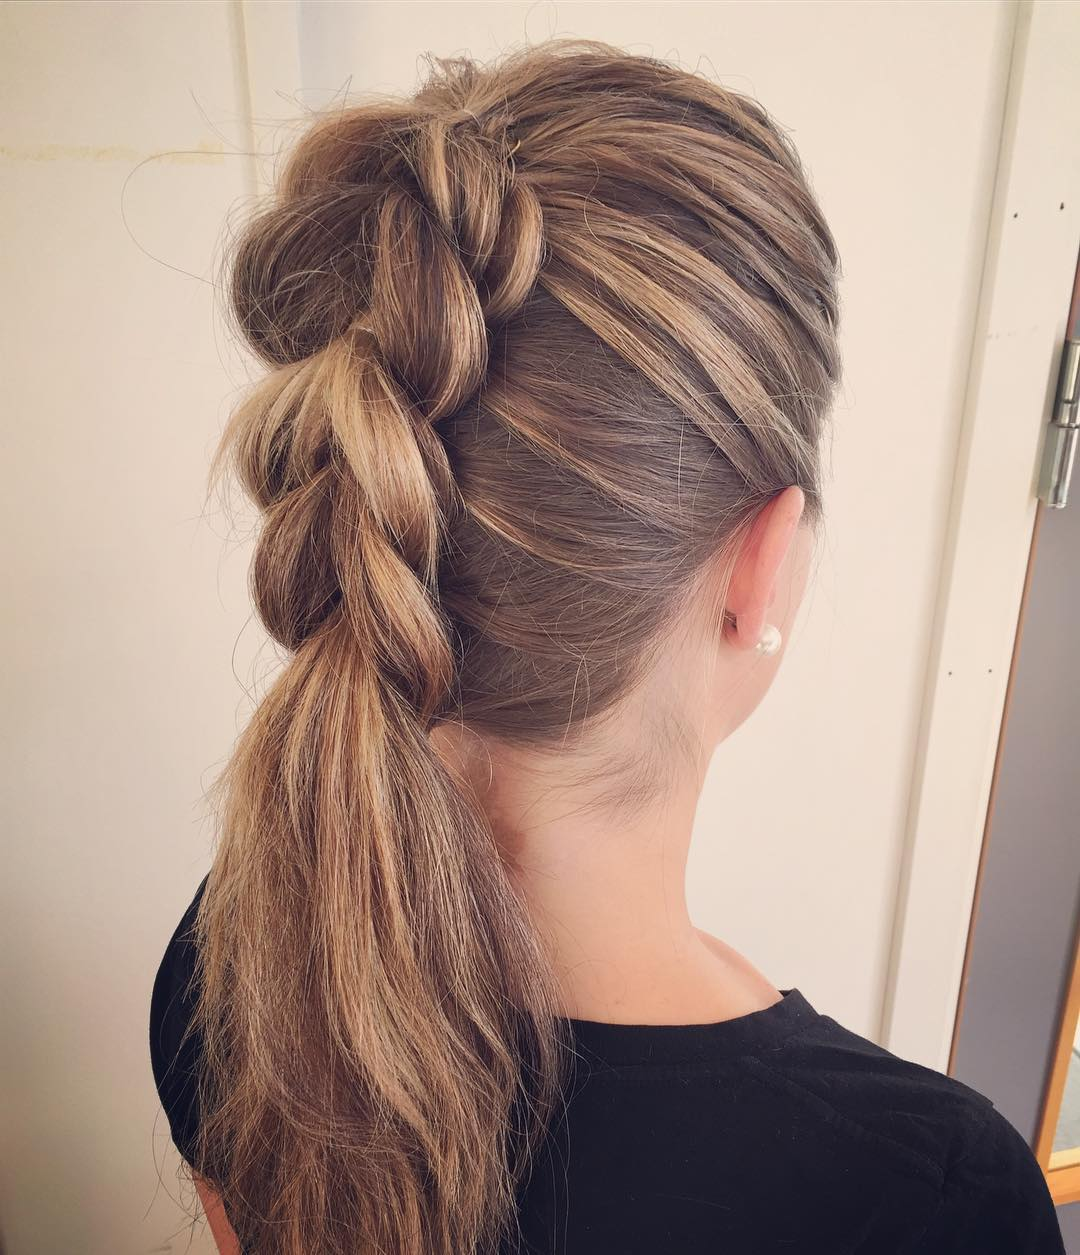 10 Braided Hairstyle Ideas For Balayage Ombr 233 Hair 2019